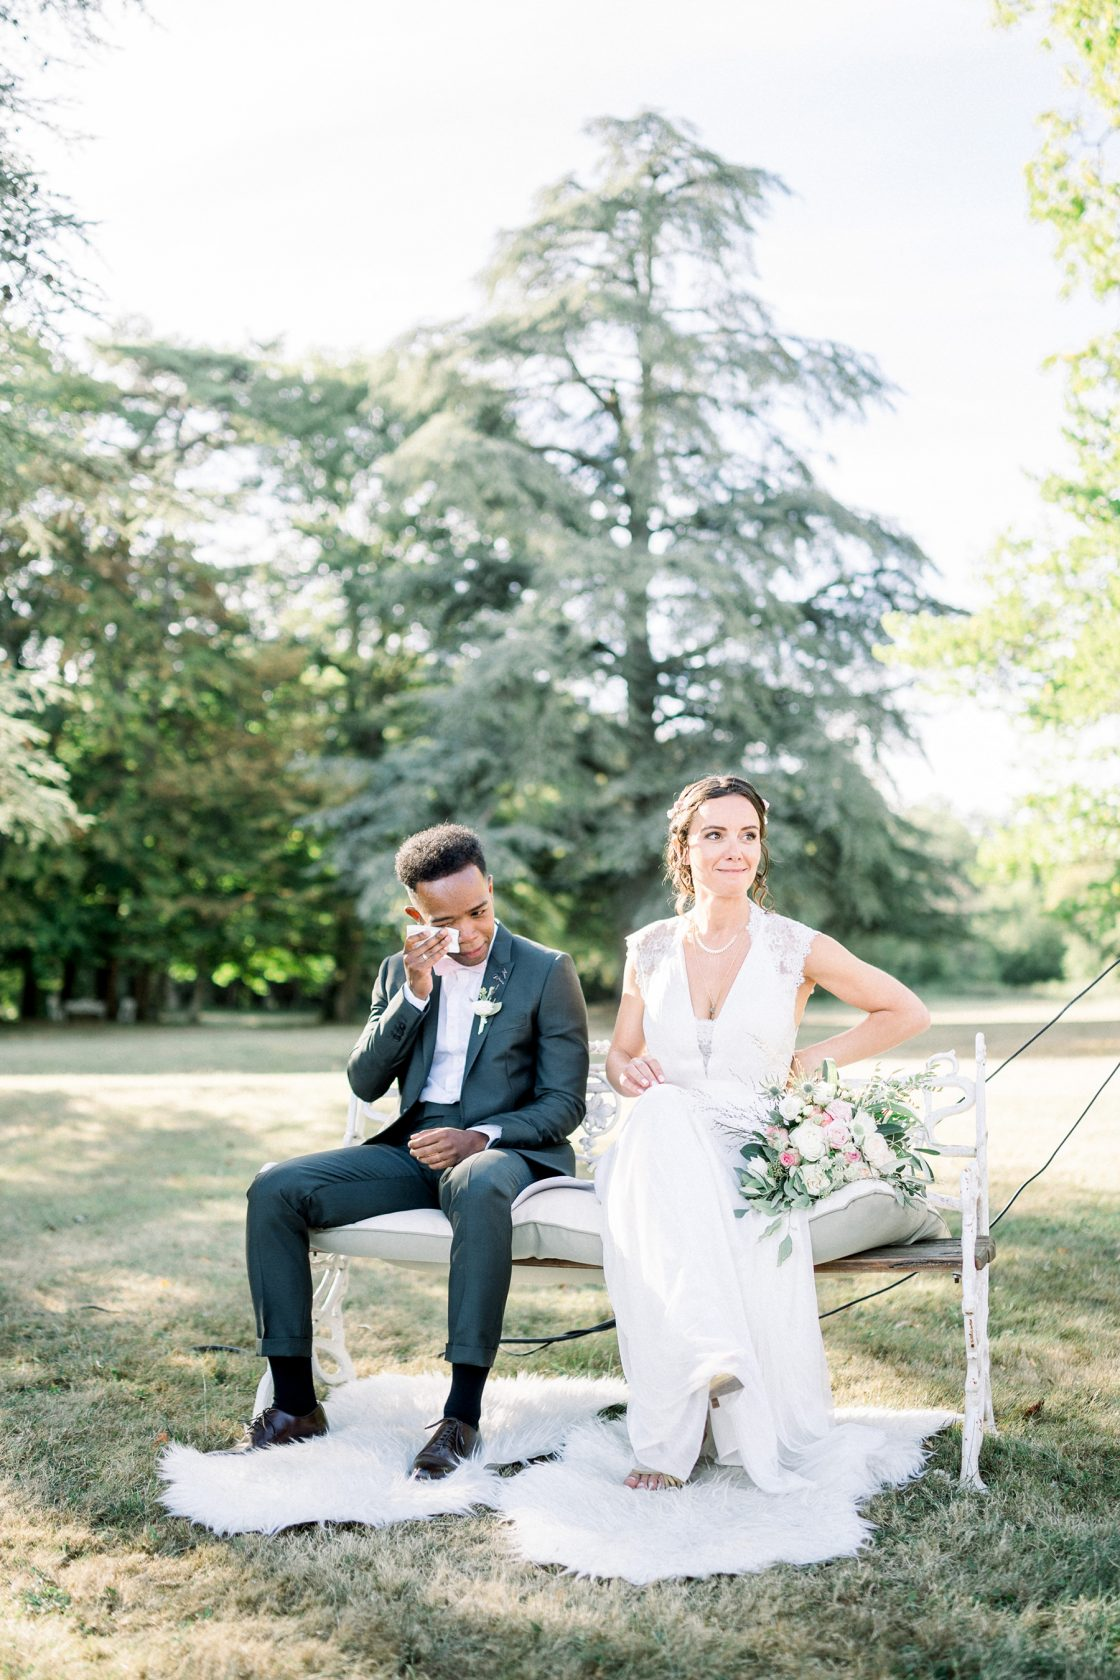 French Chateau Wedding Inspired by Nature Romain Vaucher12